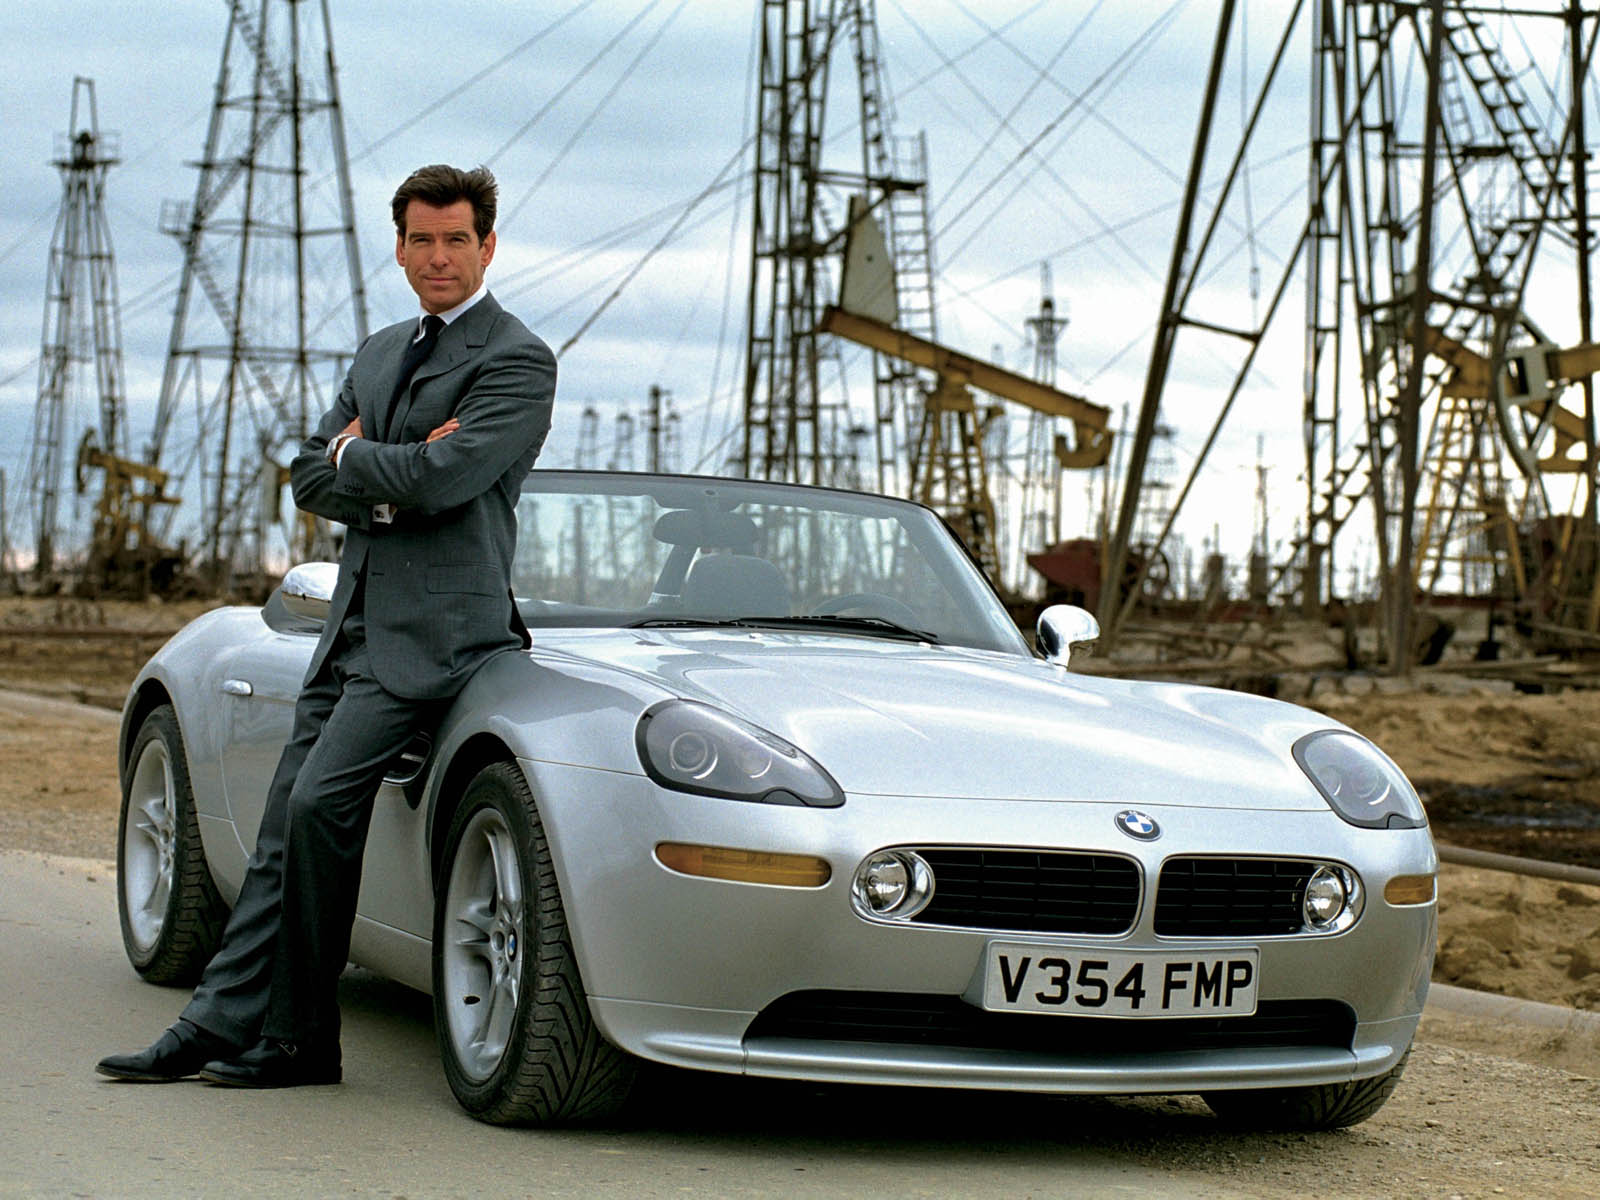 BMW Z3 roadster in Goldeneye 007